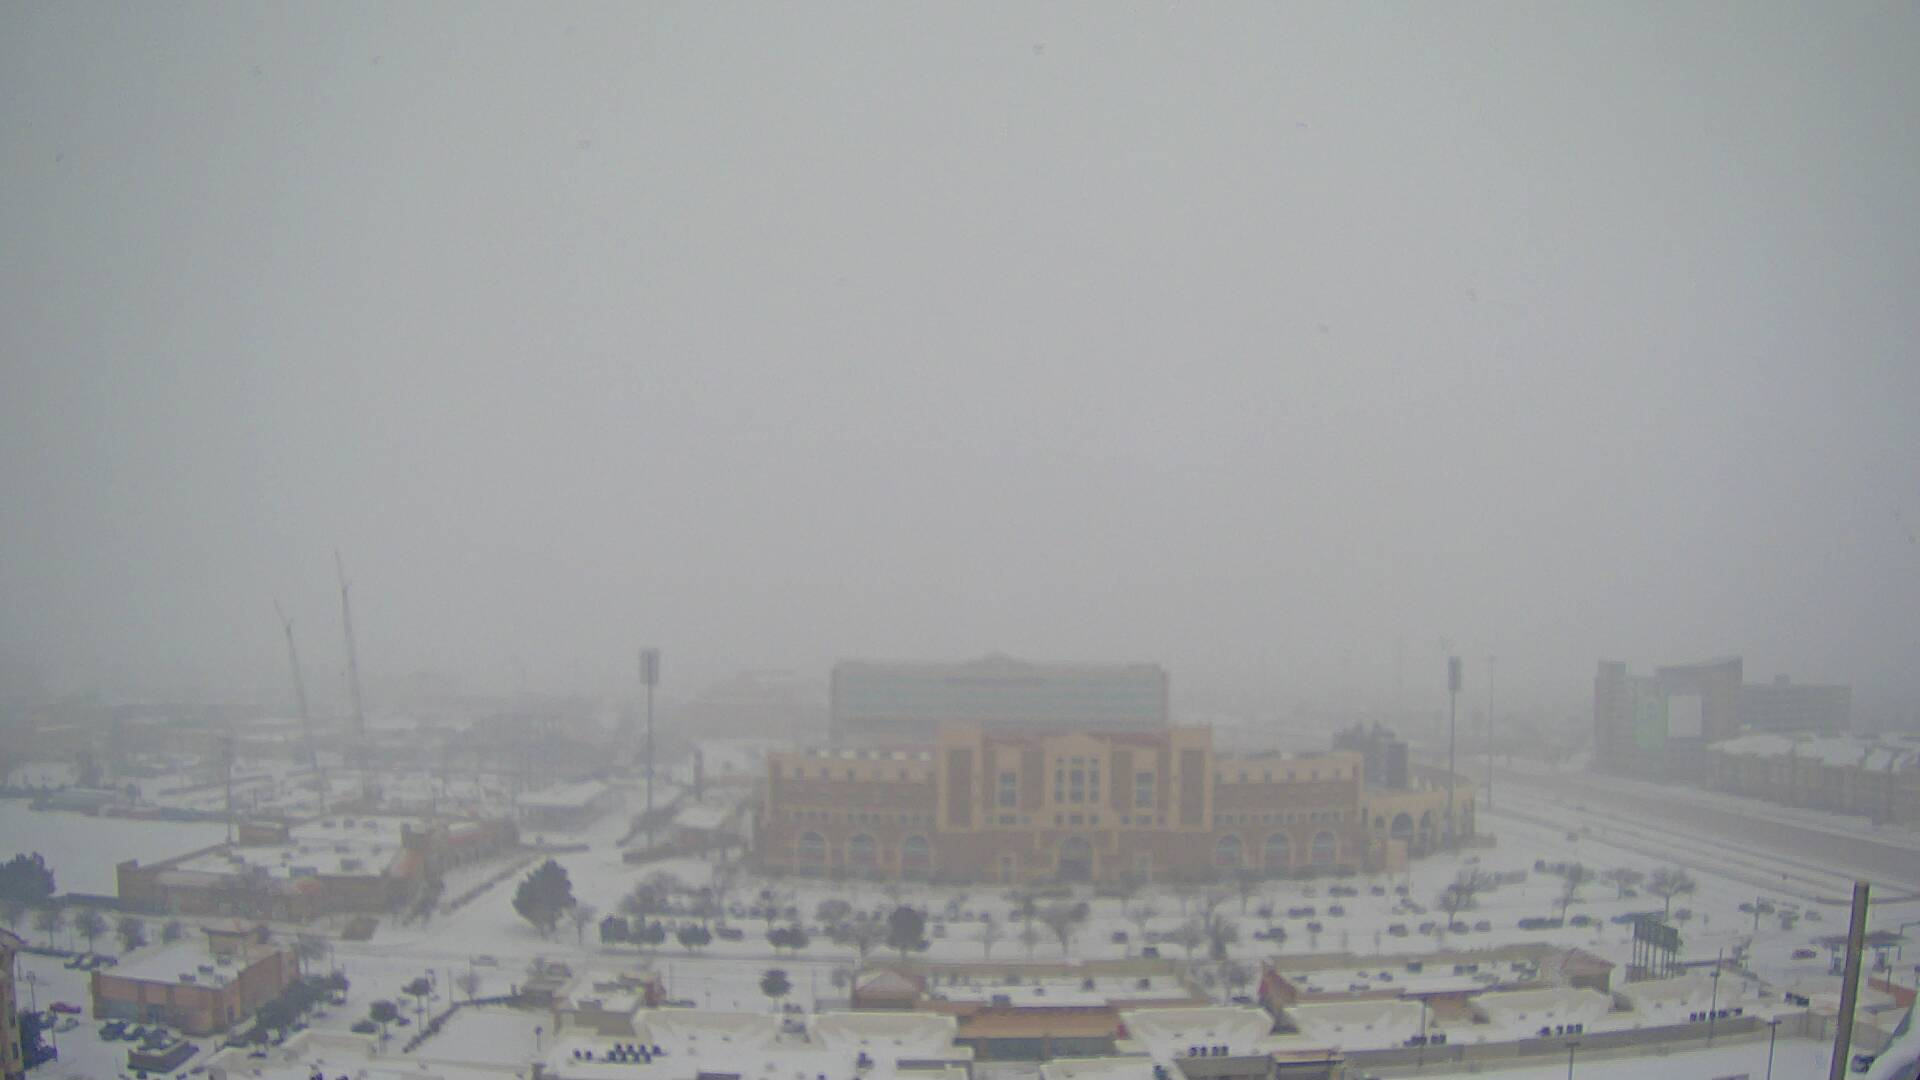 Snowfall In Texas >> Winter Returns to West Texas (Jan. 5-6, 2017 Snow event)